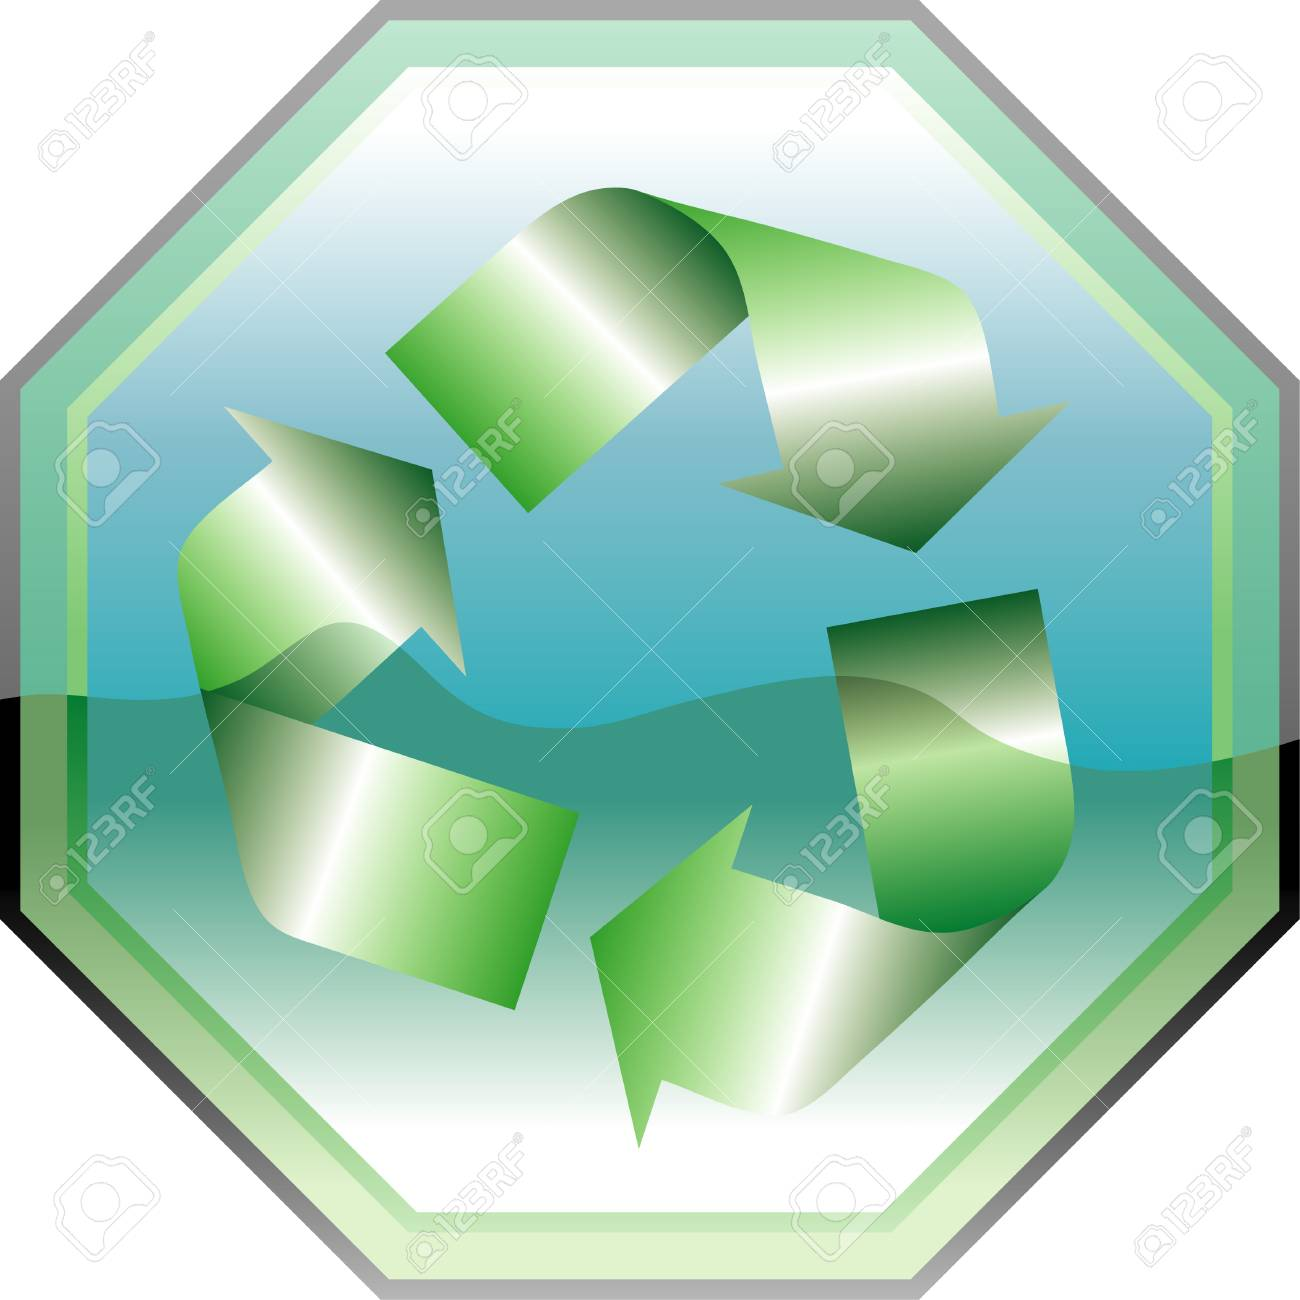 vectorillustration recycling symbol on traffic sign Stock Vector - 3025694